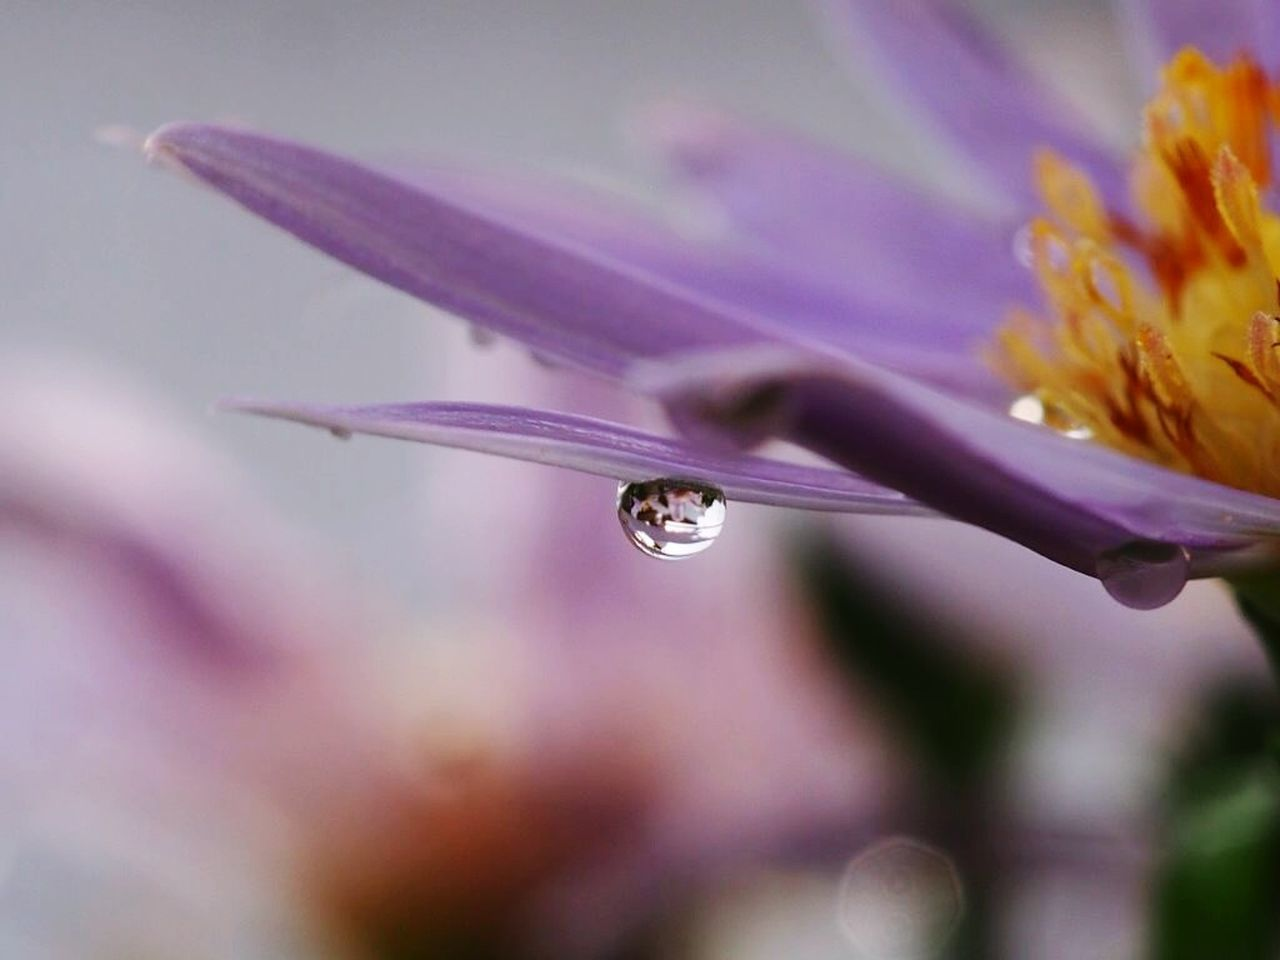 flower, fragility, nature, beauty in nature, drop, plant, growth, freshness, petal, close-up, focus on foreground, no people, outdoors, day, flower head, water